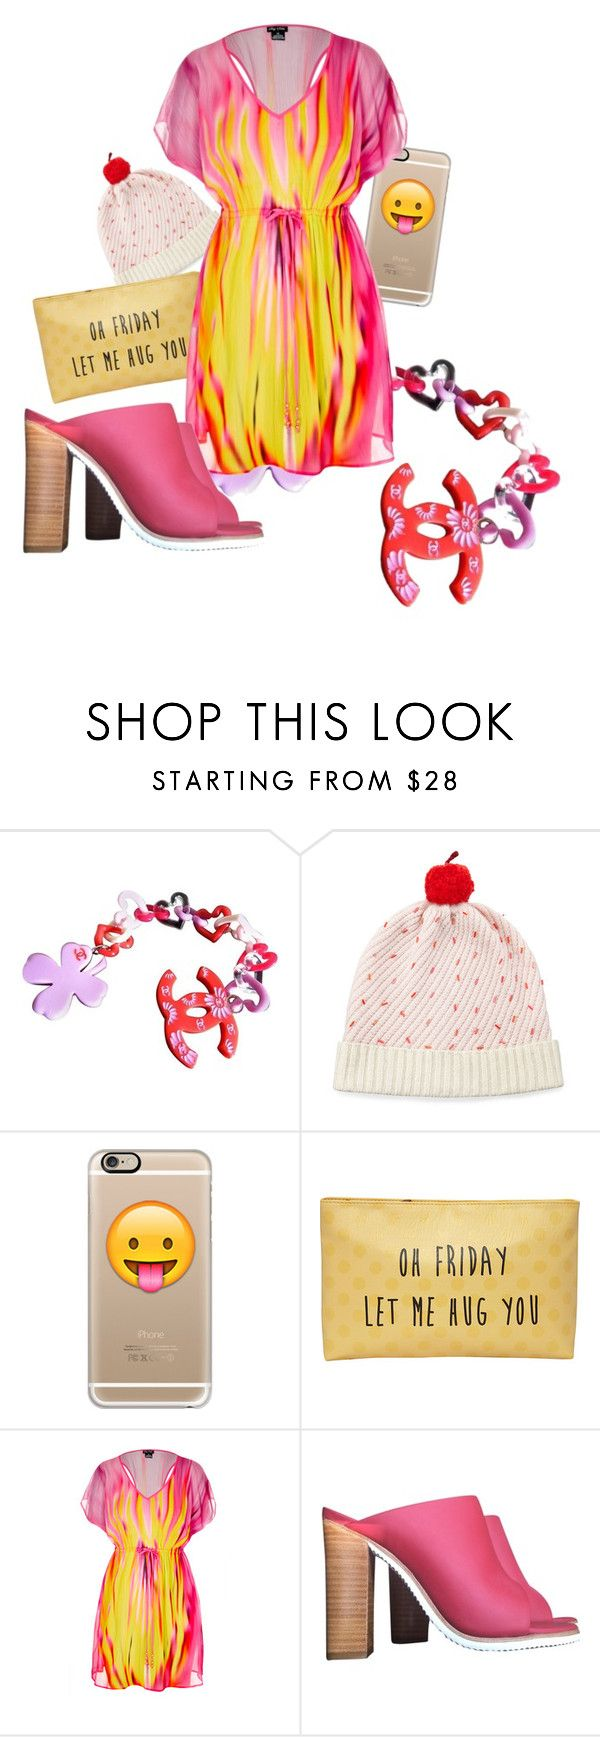 """""""[142] TGIF"""" by ka-berger ❤ liked on Polyvore featuring Chanel, Kate Spade, Casetify, T-shirt & Jeans, City Chic, TIBI and weekend"""